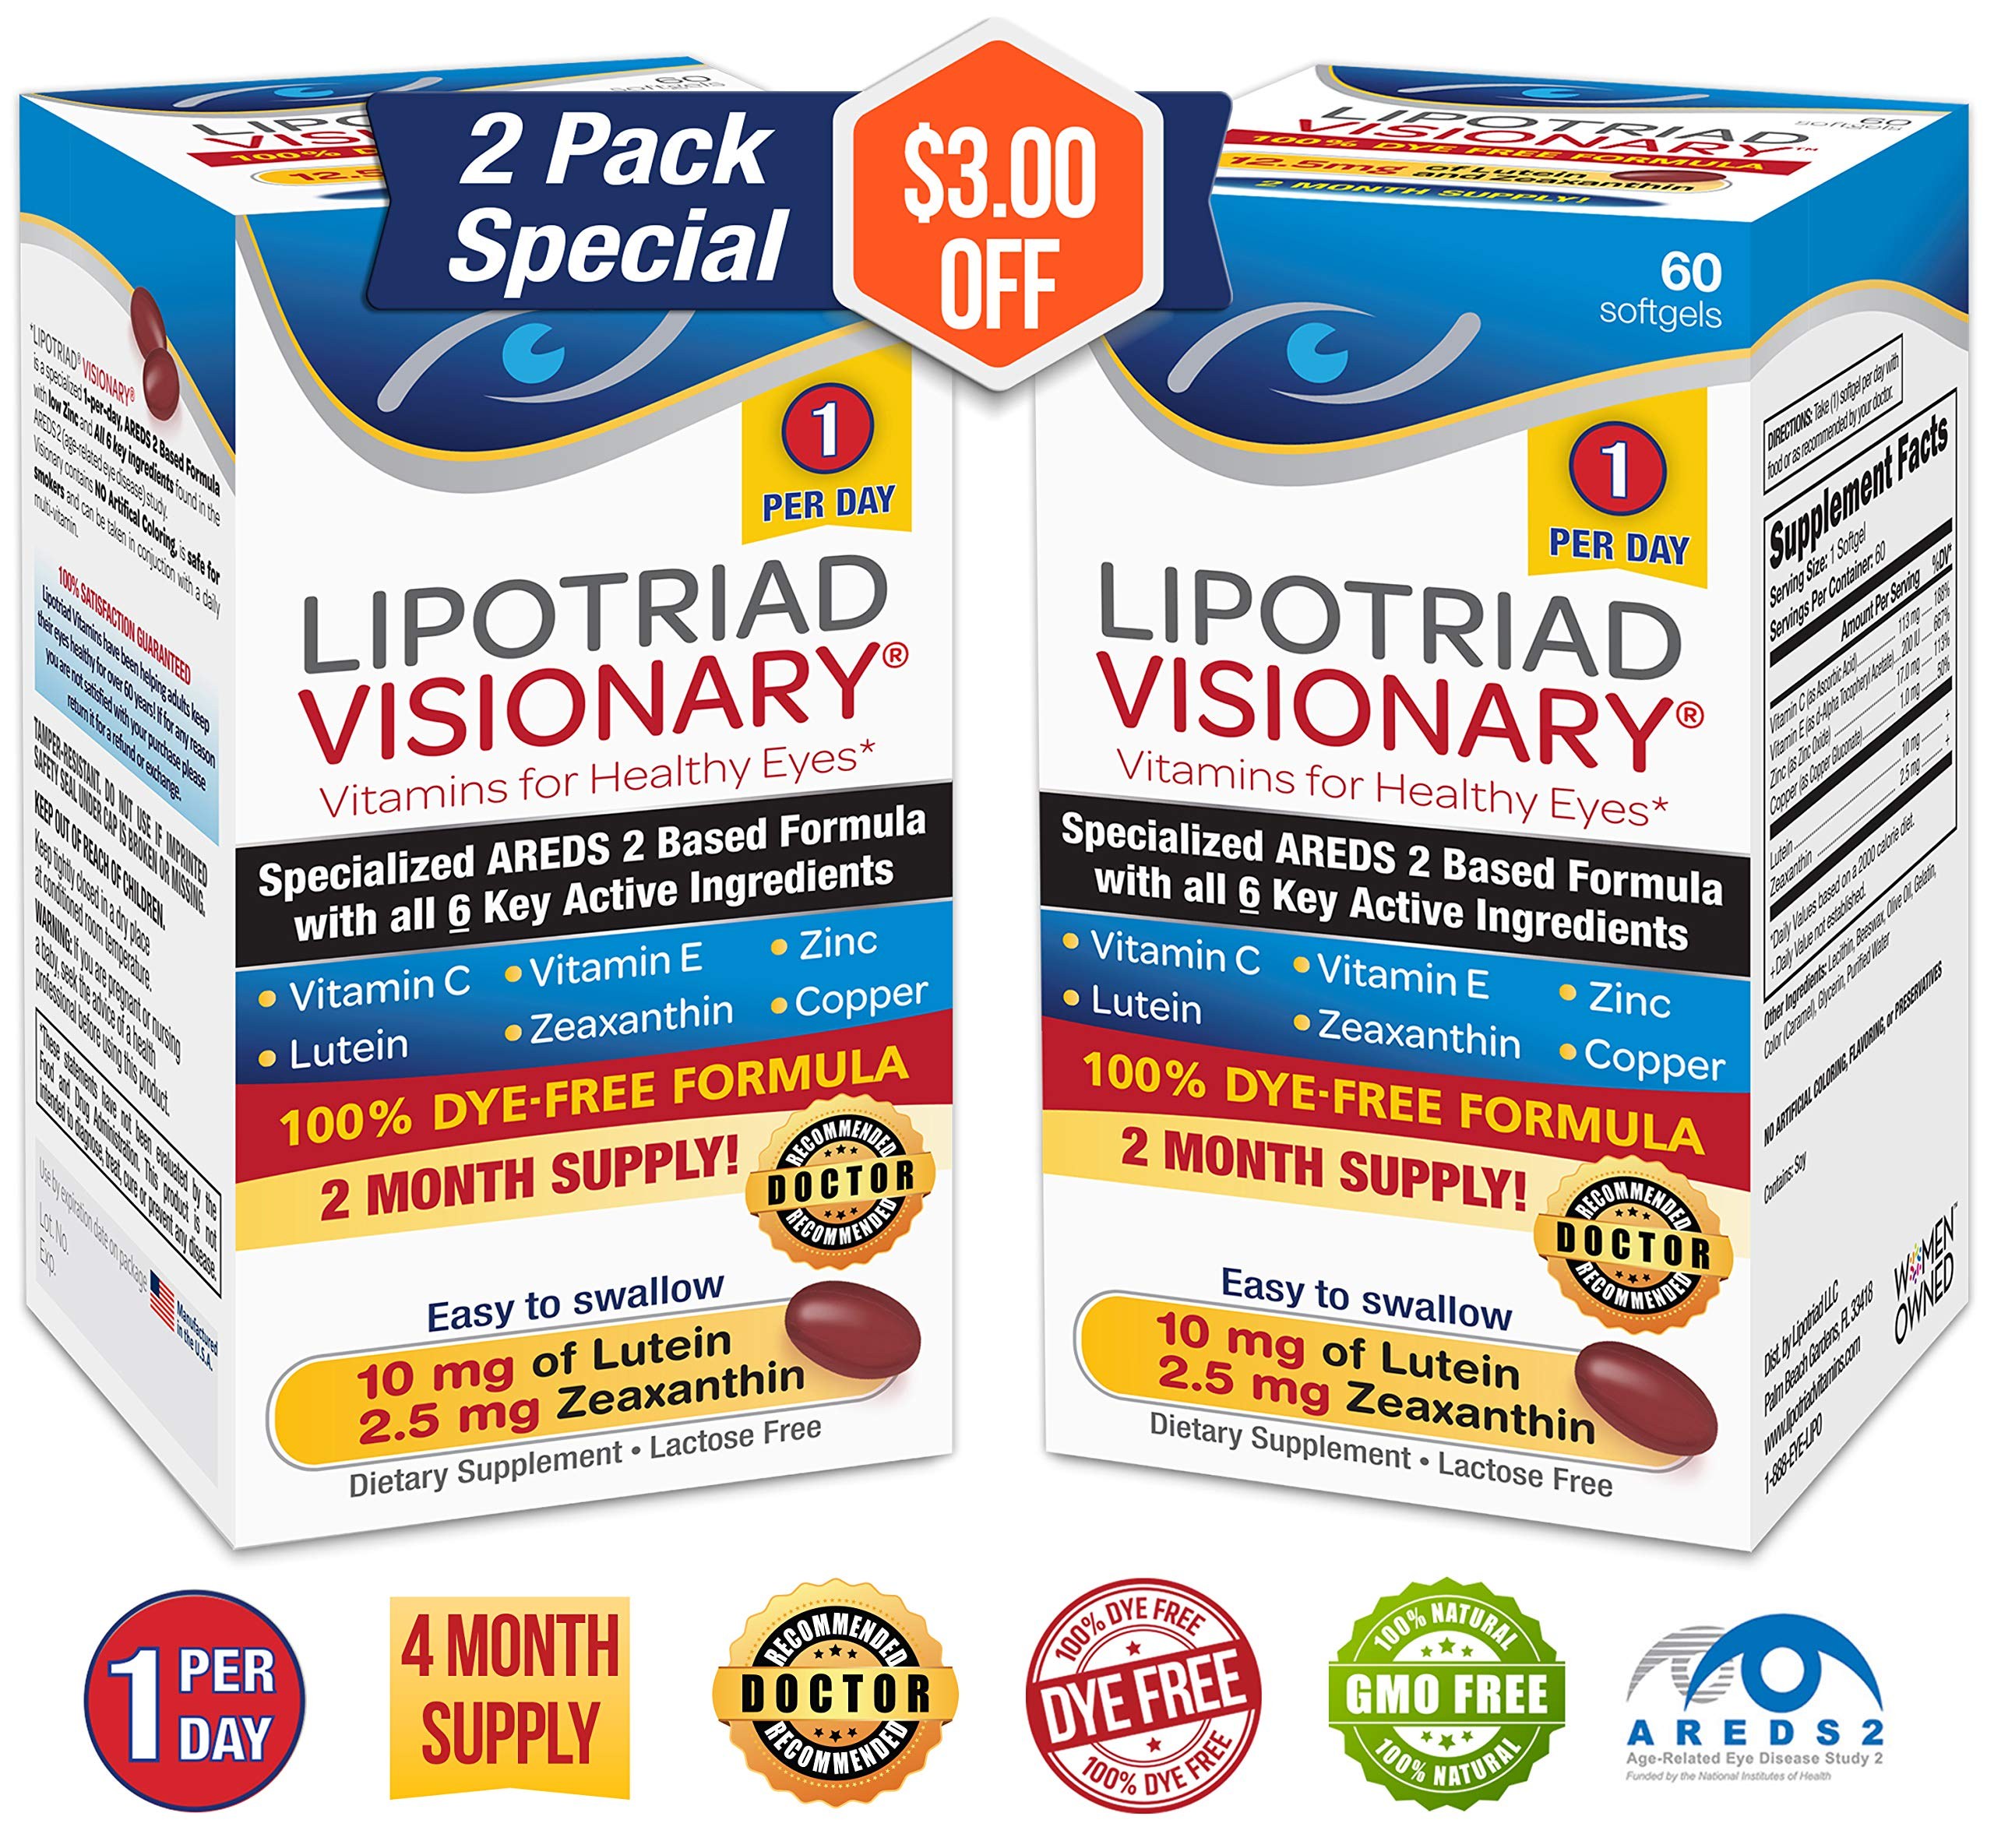 Lipotriad Visionary 1 Per Day AREDS 2 Eye Vitamin & Mineral Supplement   W/All 6 Key Ingredients in The AREDS 2 Study   Dye Free, Low Zinc, Safe for Smokers, Easy to Swallow   2 Pack, 4 Mo Supply